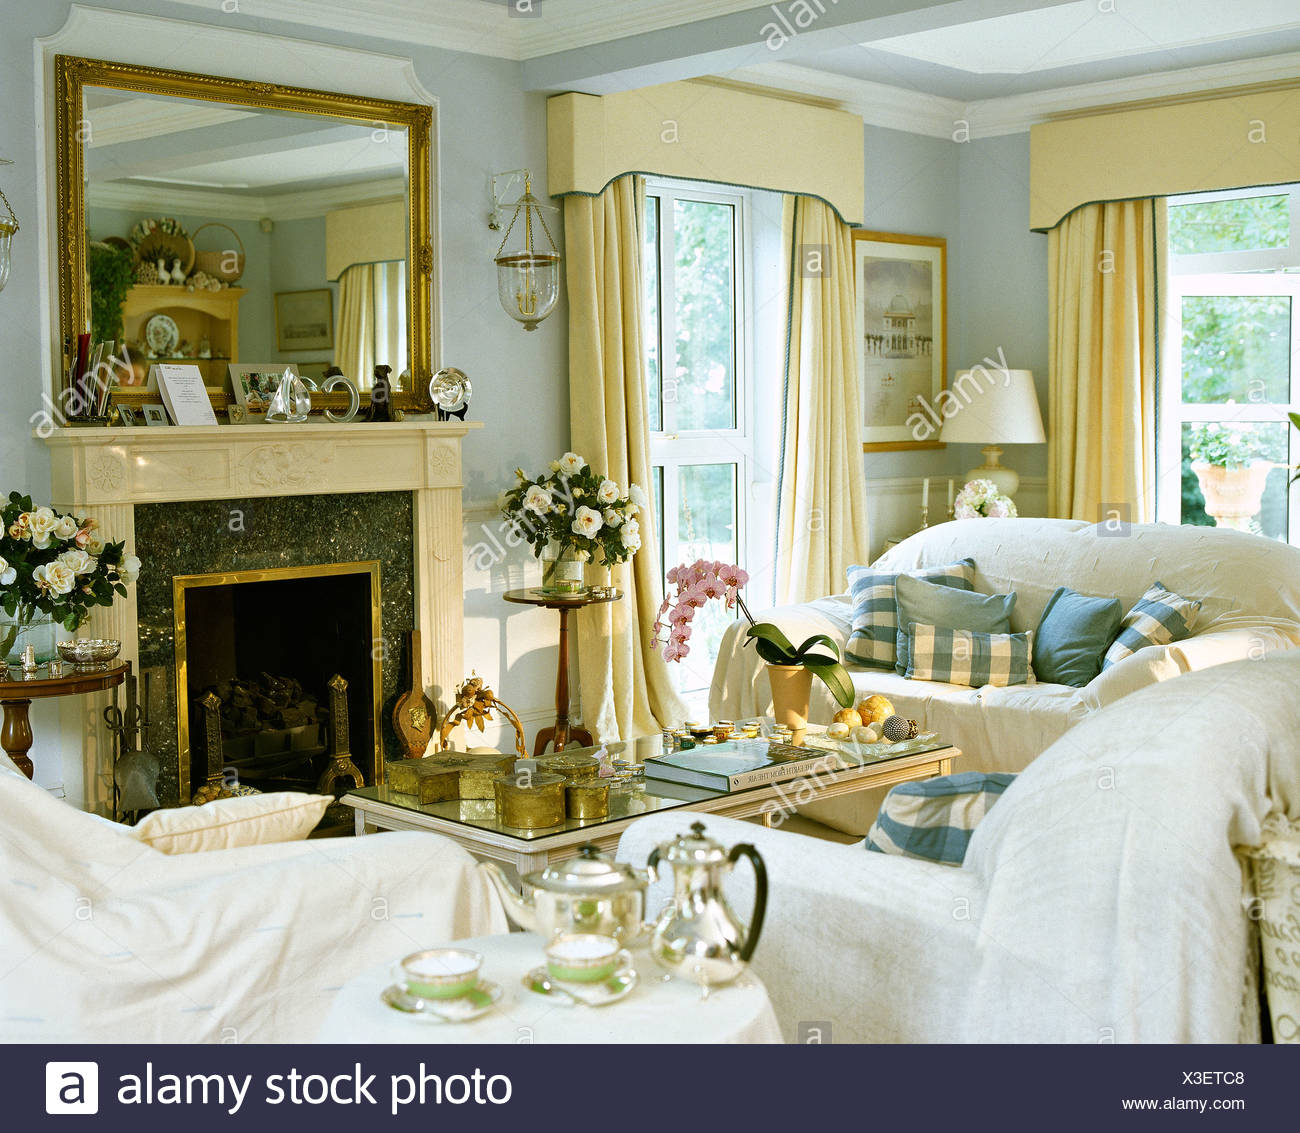 White throws on sofas in pale blue living room with large ...